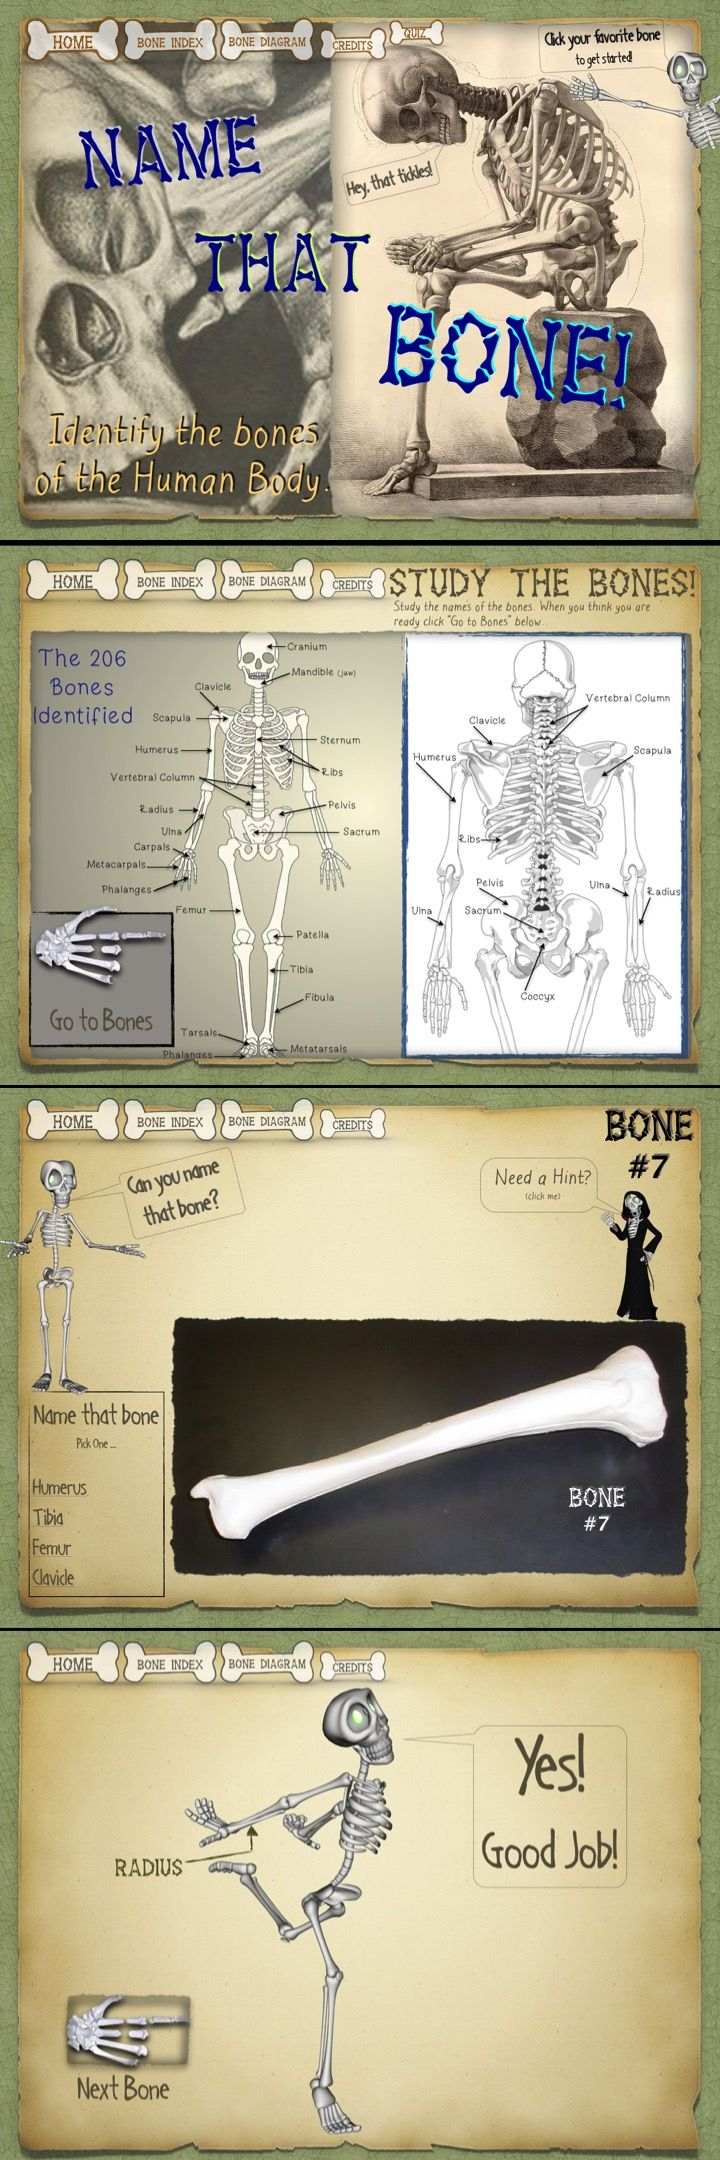 A fun way for students to learn the basic bones of the Human Body.  Works great on an iPad or any device.